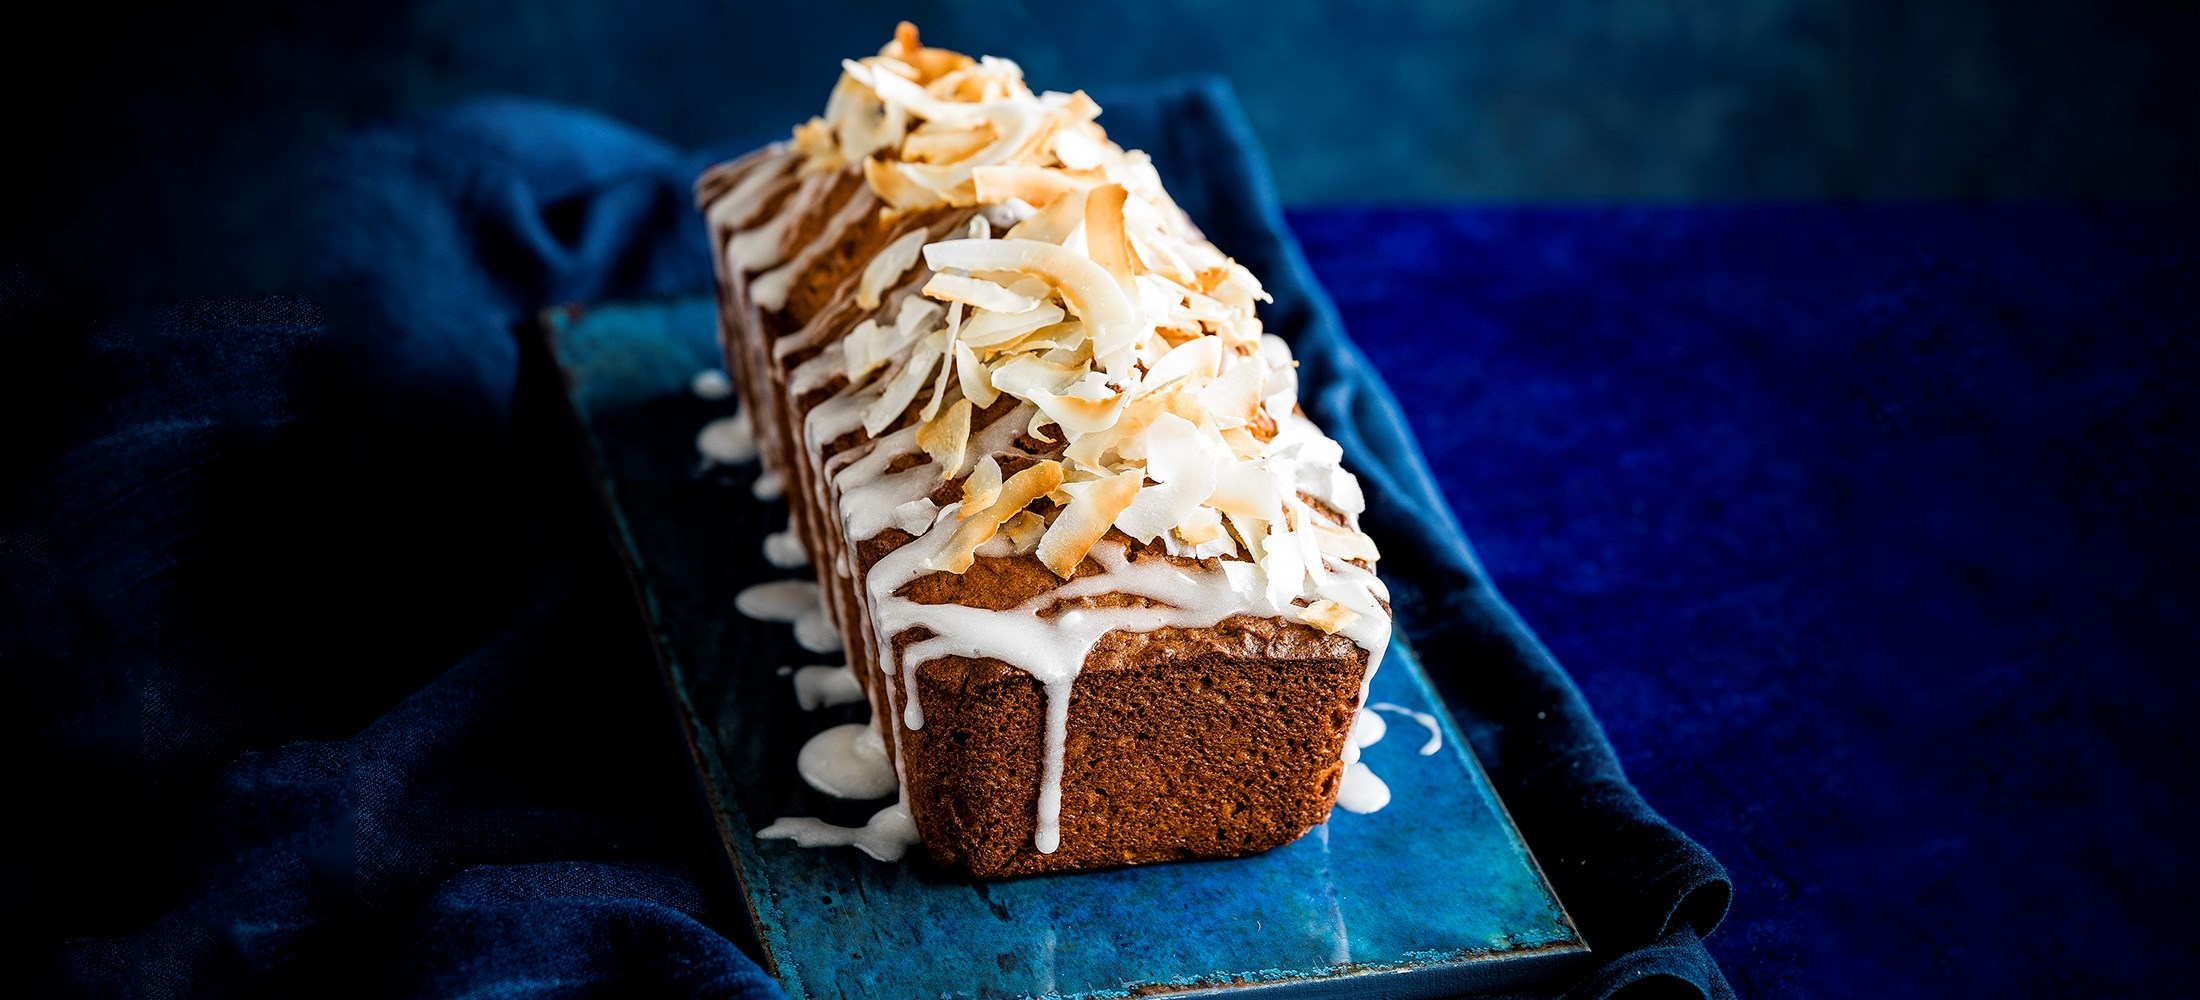 Best Coconut Recipes For Coconut Cake and Bakes